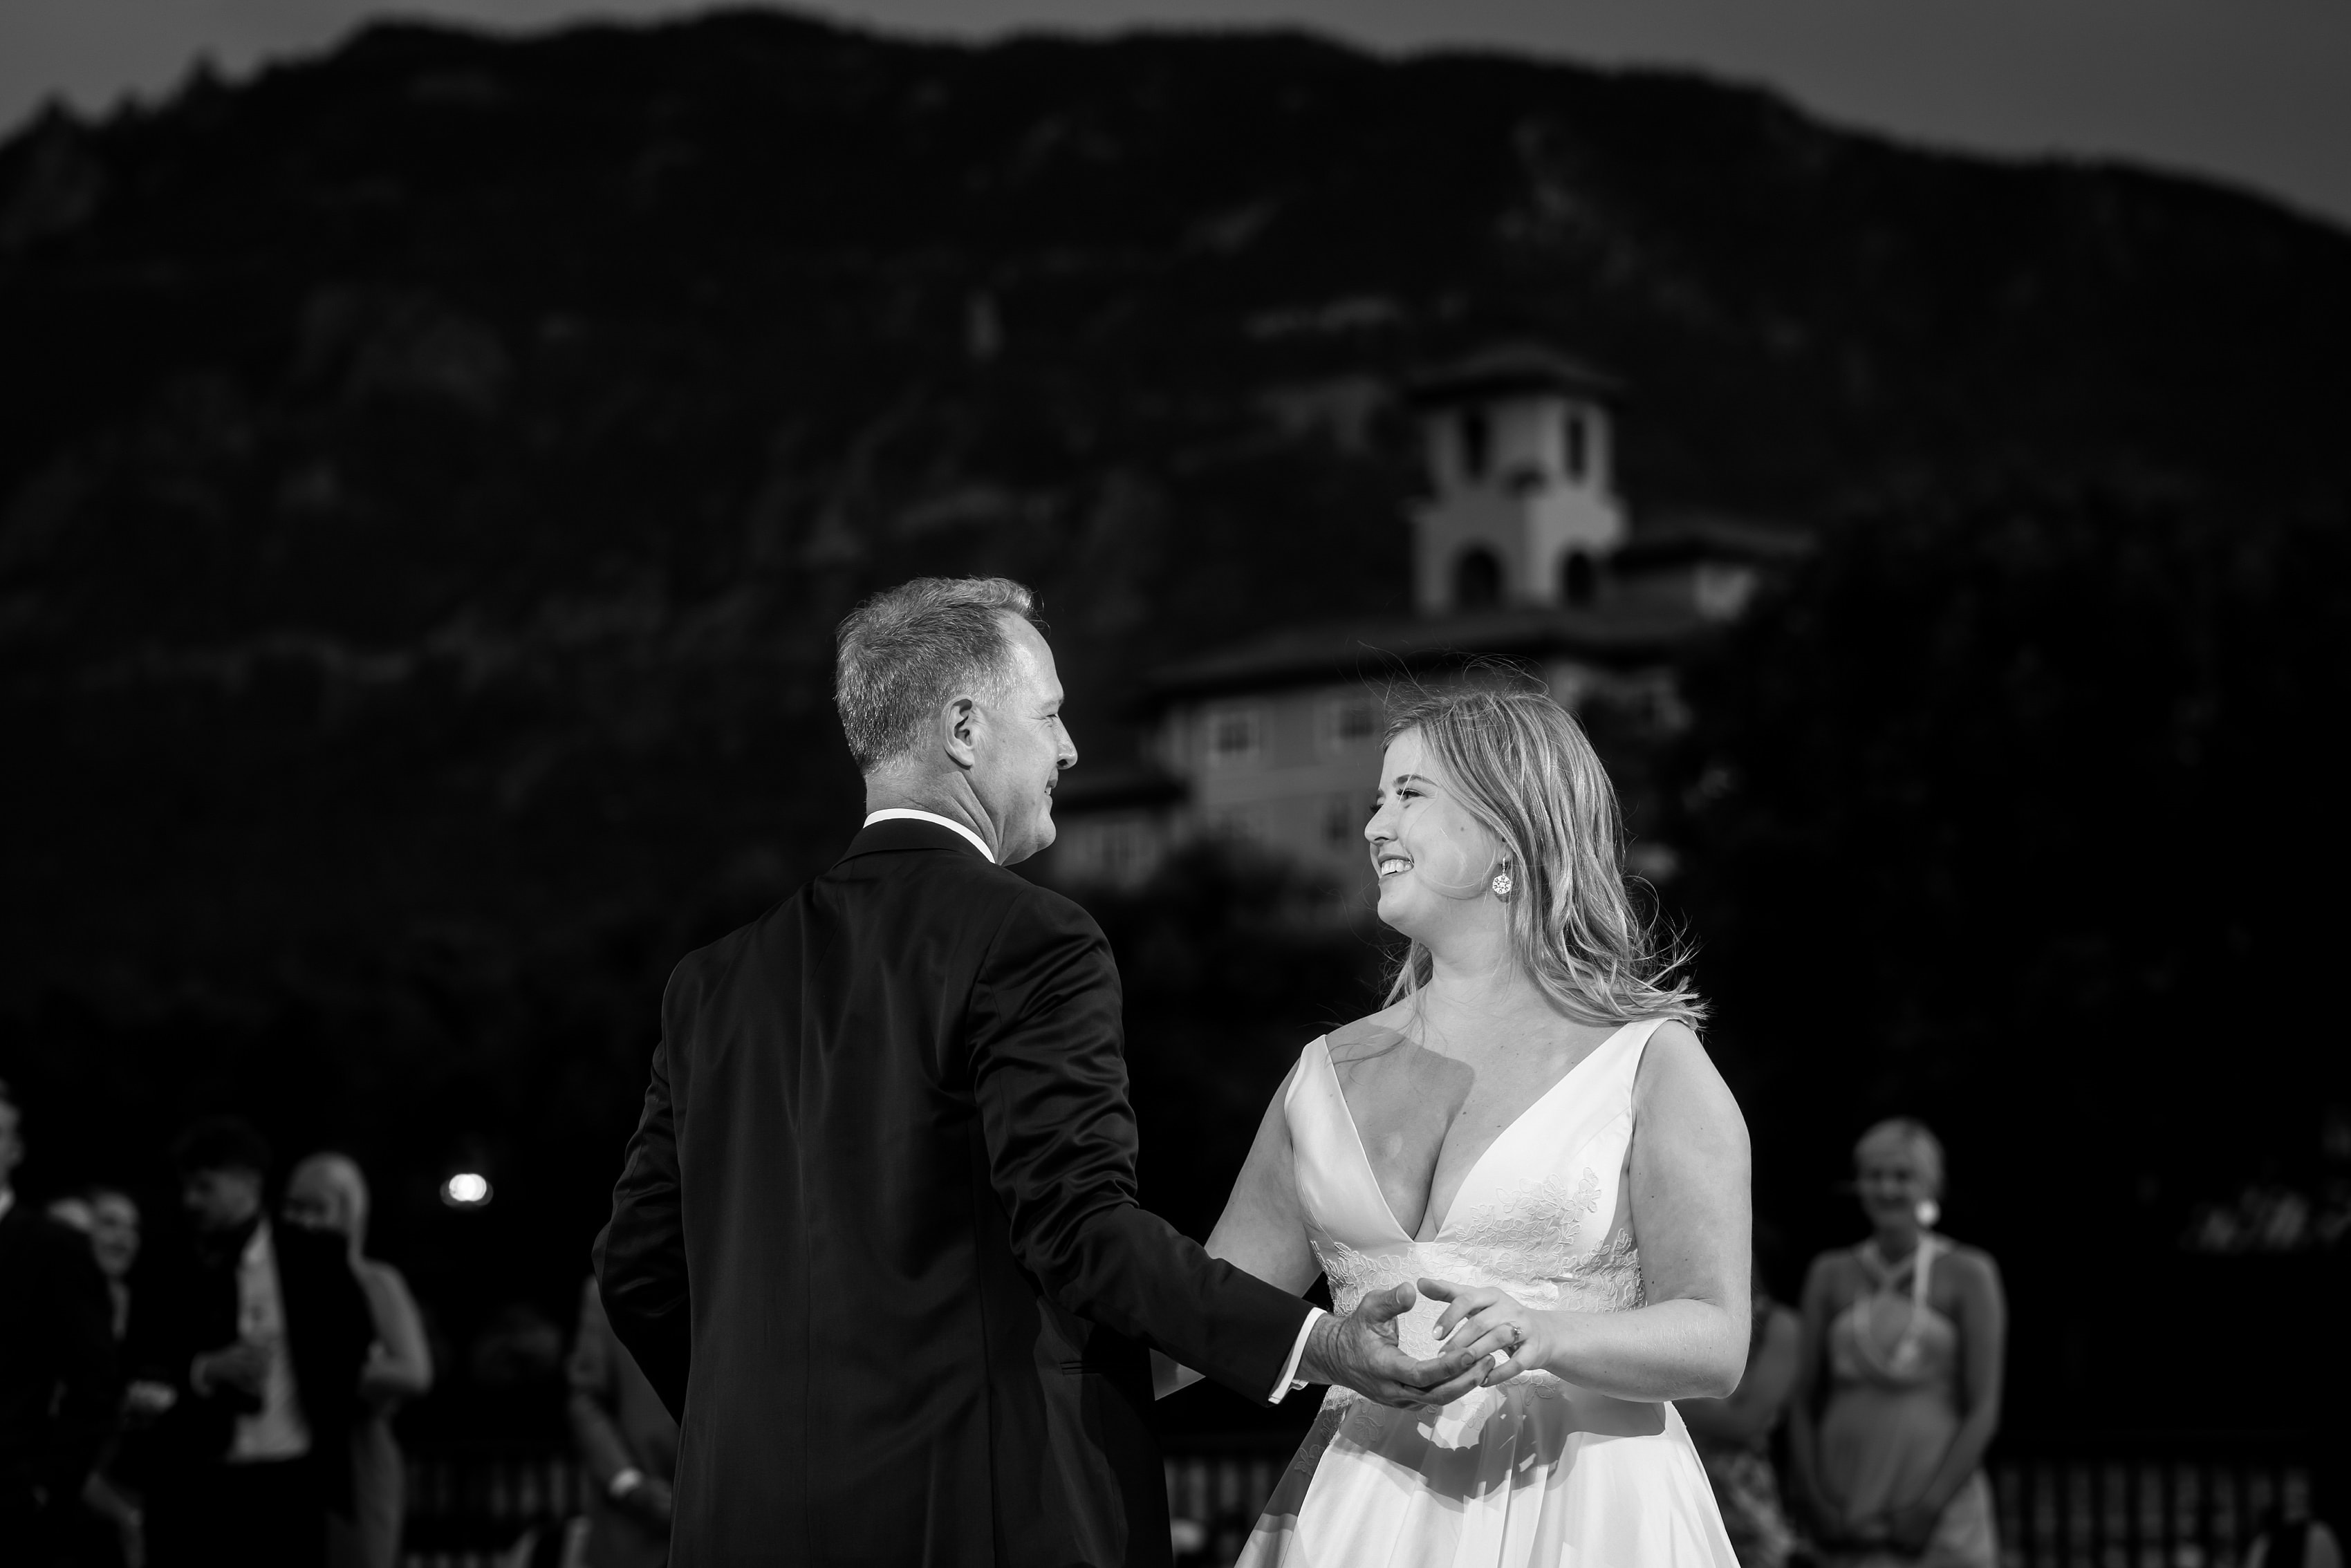 bride shares first dance with her father outdoors on the patio during wedding reception at The Broadmoor Hotel